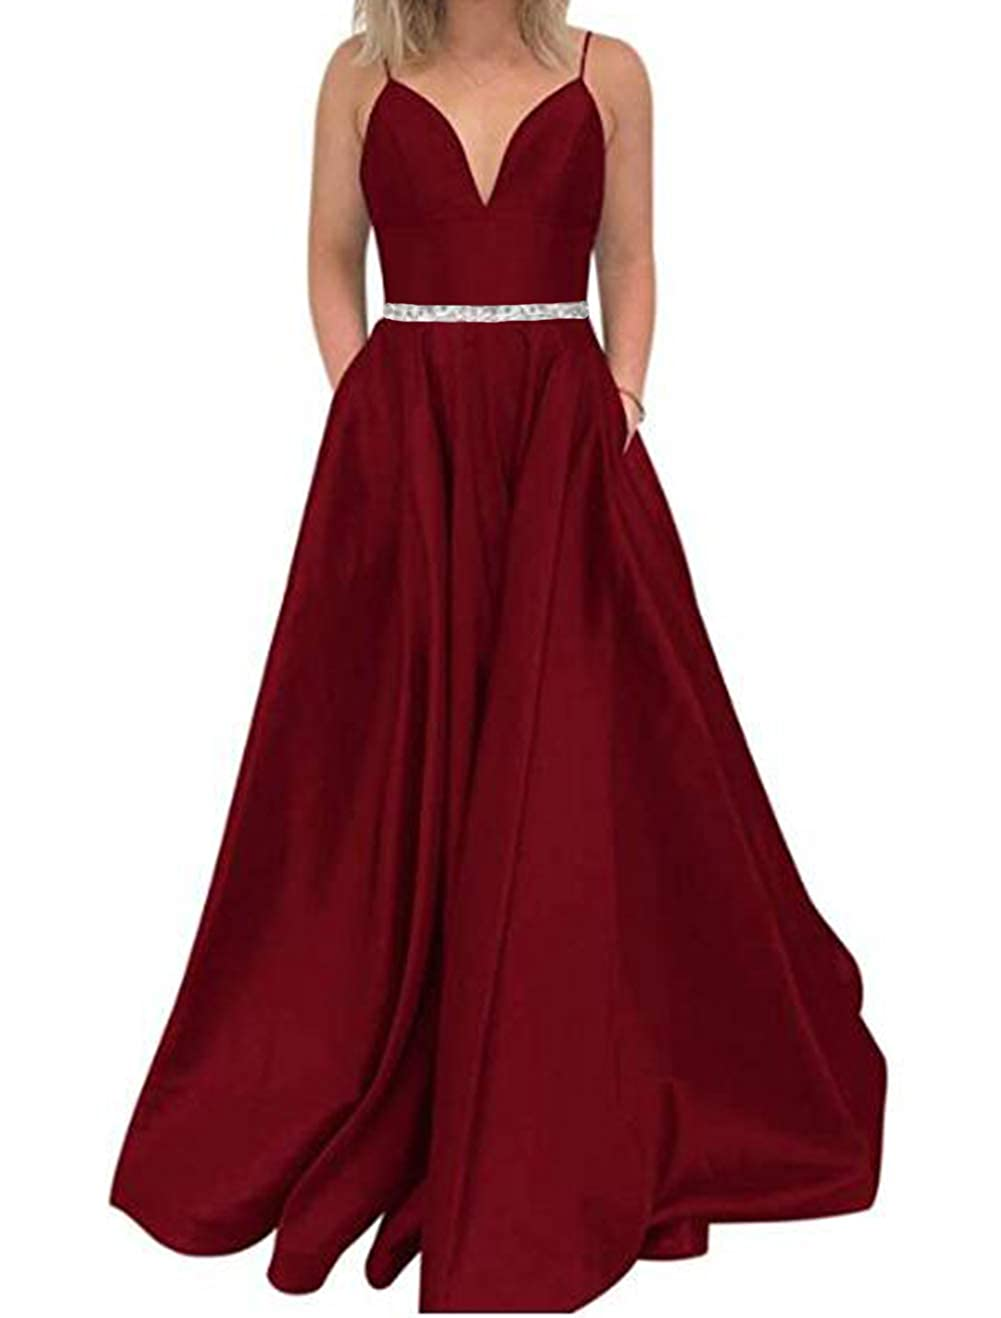 Burgundy Tsbridal Women's A Line Bead Prom Dresses V Neck Satin with Pockets Evening Gown